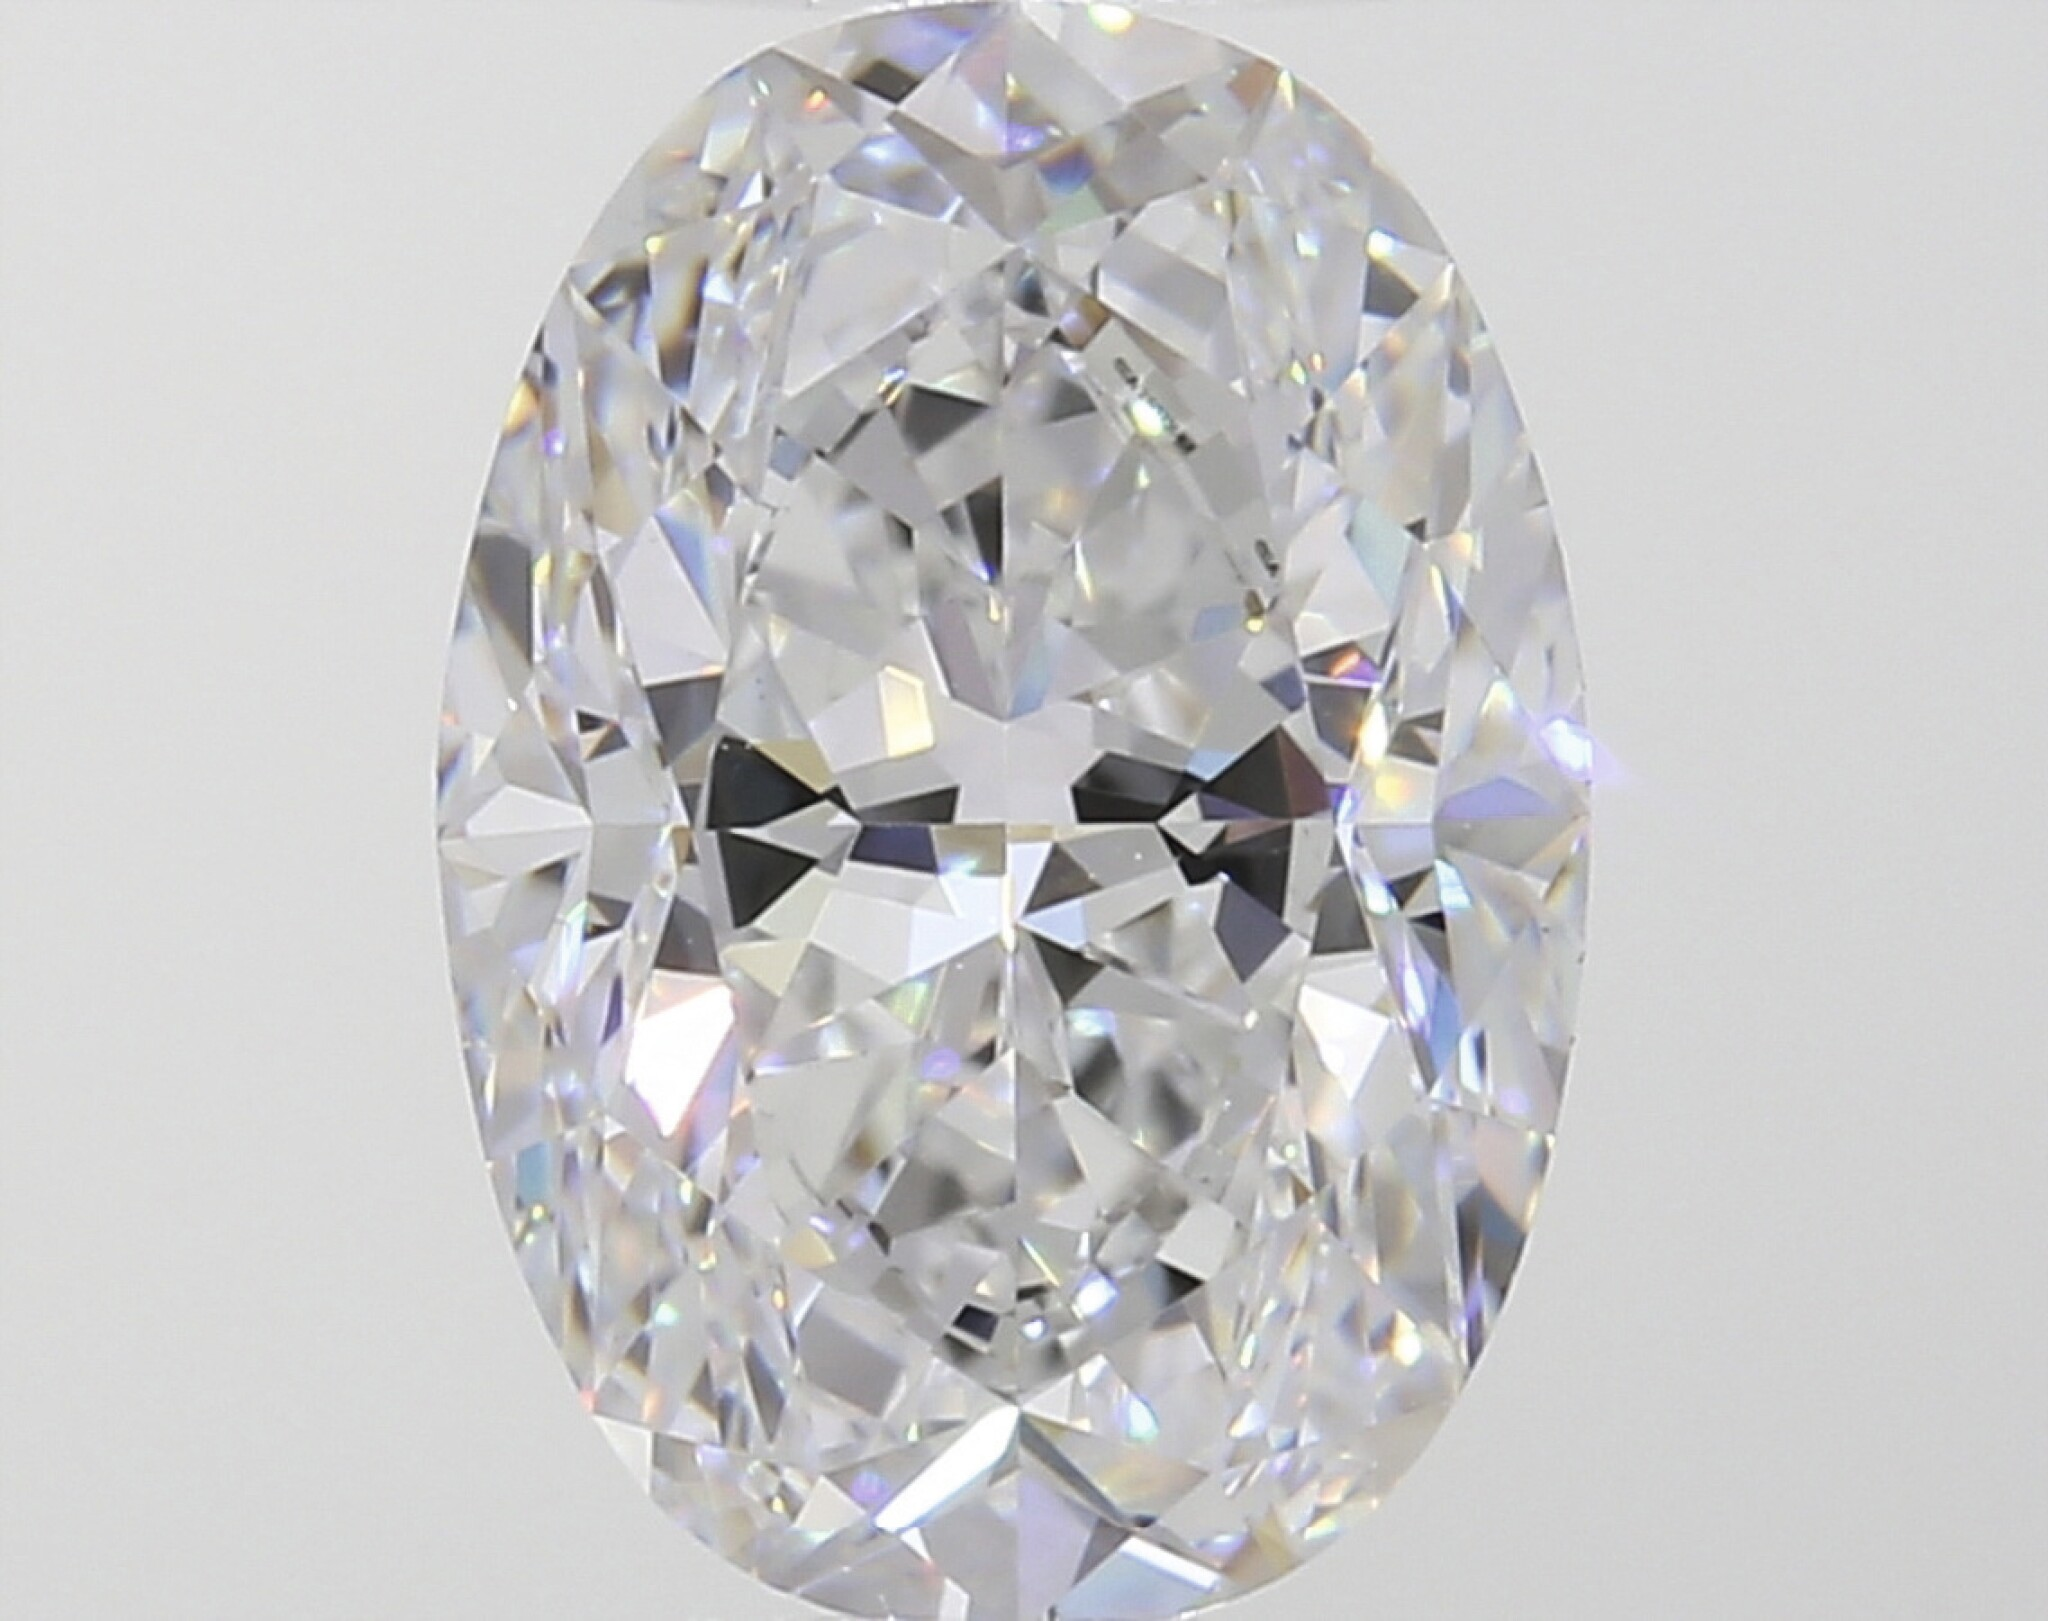 A 4.02 Carat Oval-Shaped Diamond, D Color, VVS1 Clarity